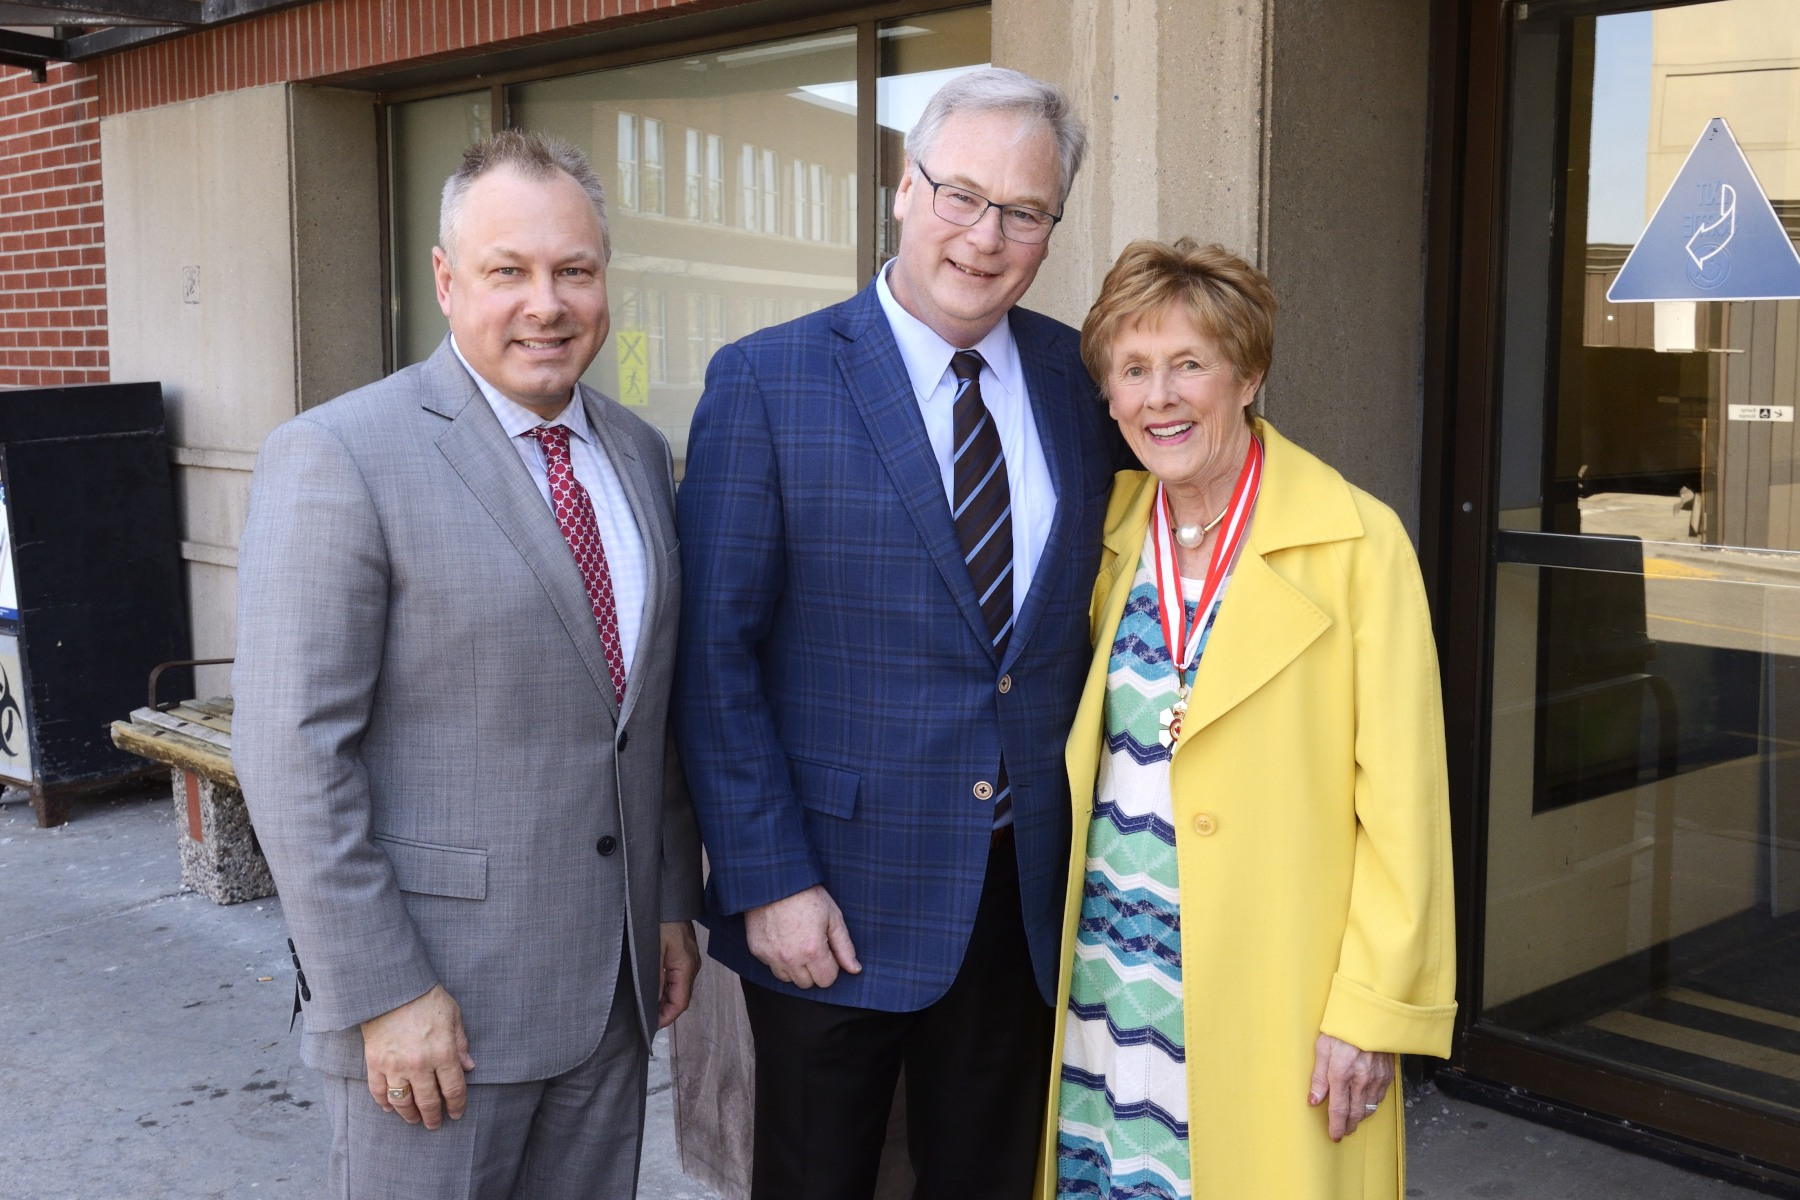 She was greeted by Mr. Tim Kluke, President and CEO of the Ottawa Hospital Foundation (left) and Dr. Jack Kitts, President and CEO of the Ottawa Hospital (right).